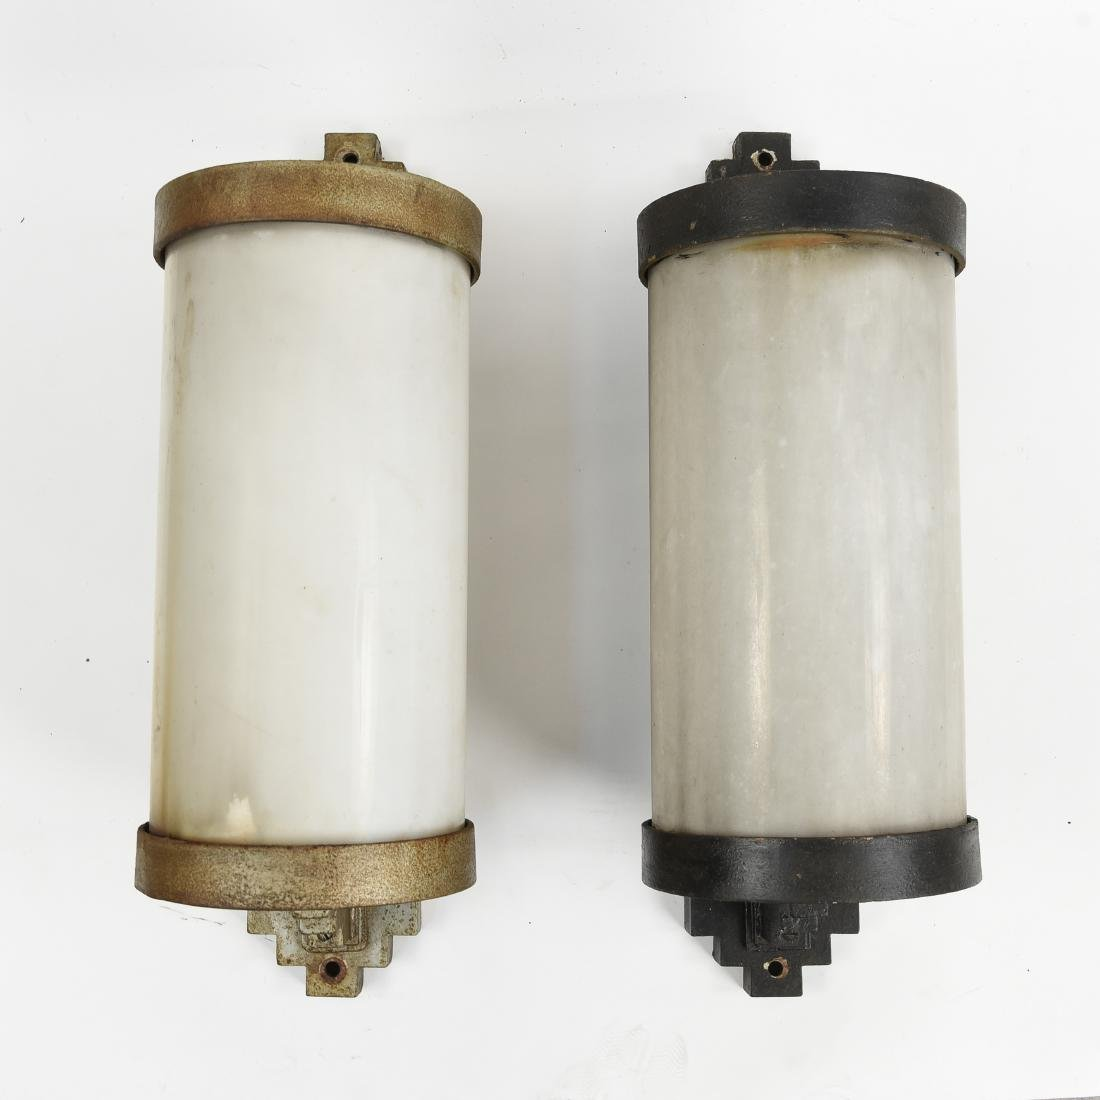 PAIR OF ART DECO SCONCES WALL LIGHTING FIXTURES